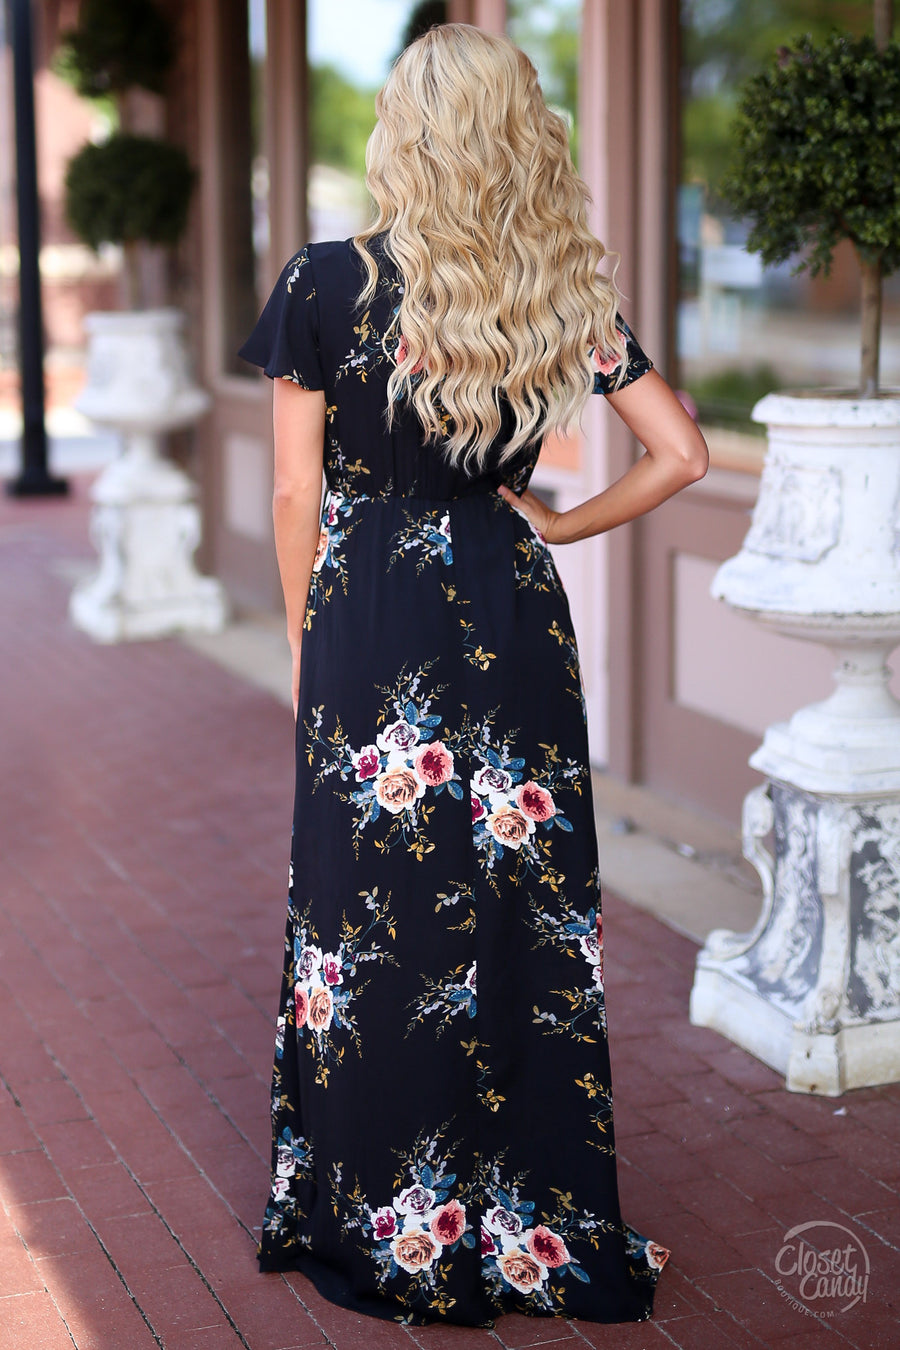 Picking Daisies Maxi Dress - cute black floral maxi dress with short sleeves, side view, Closet Candy Boutique